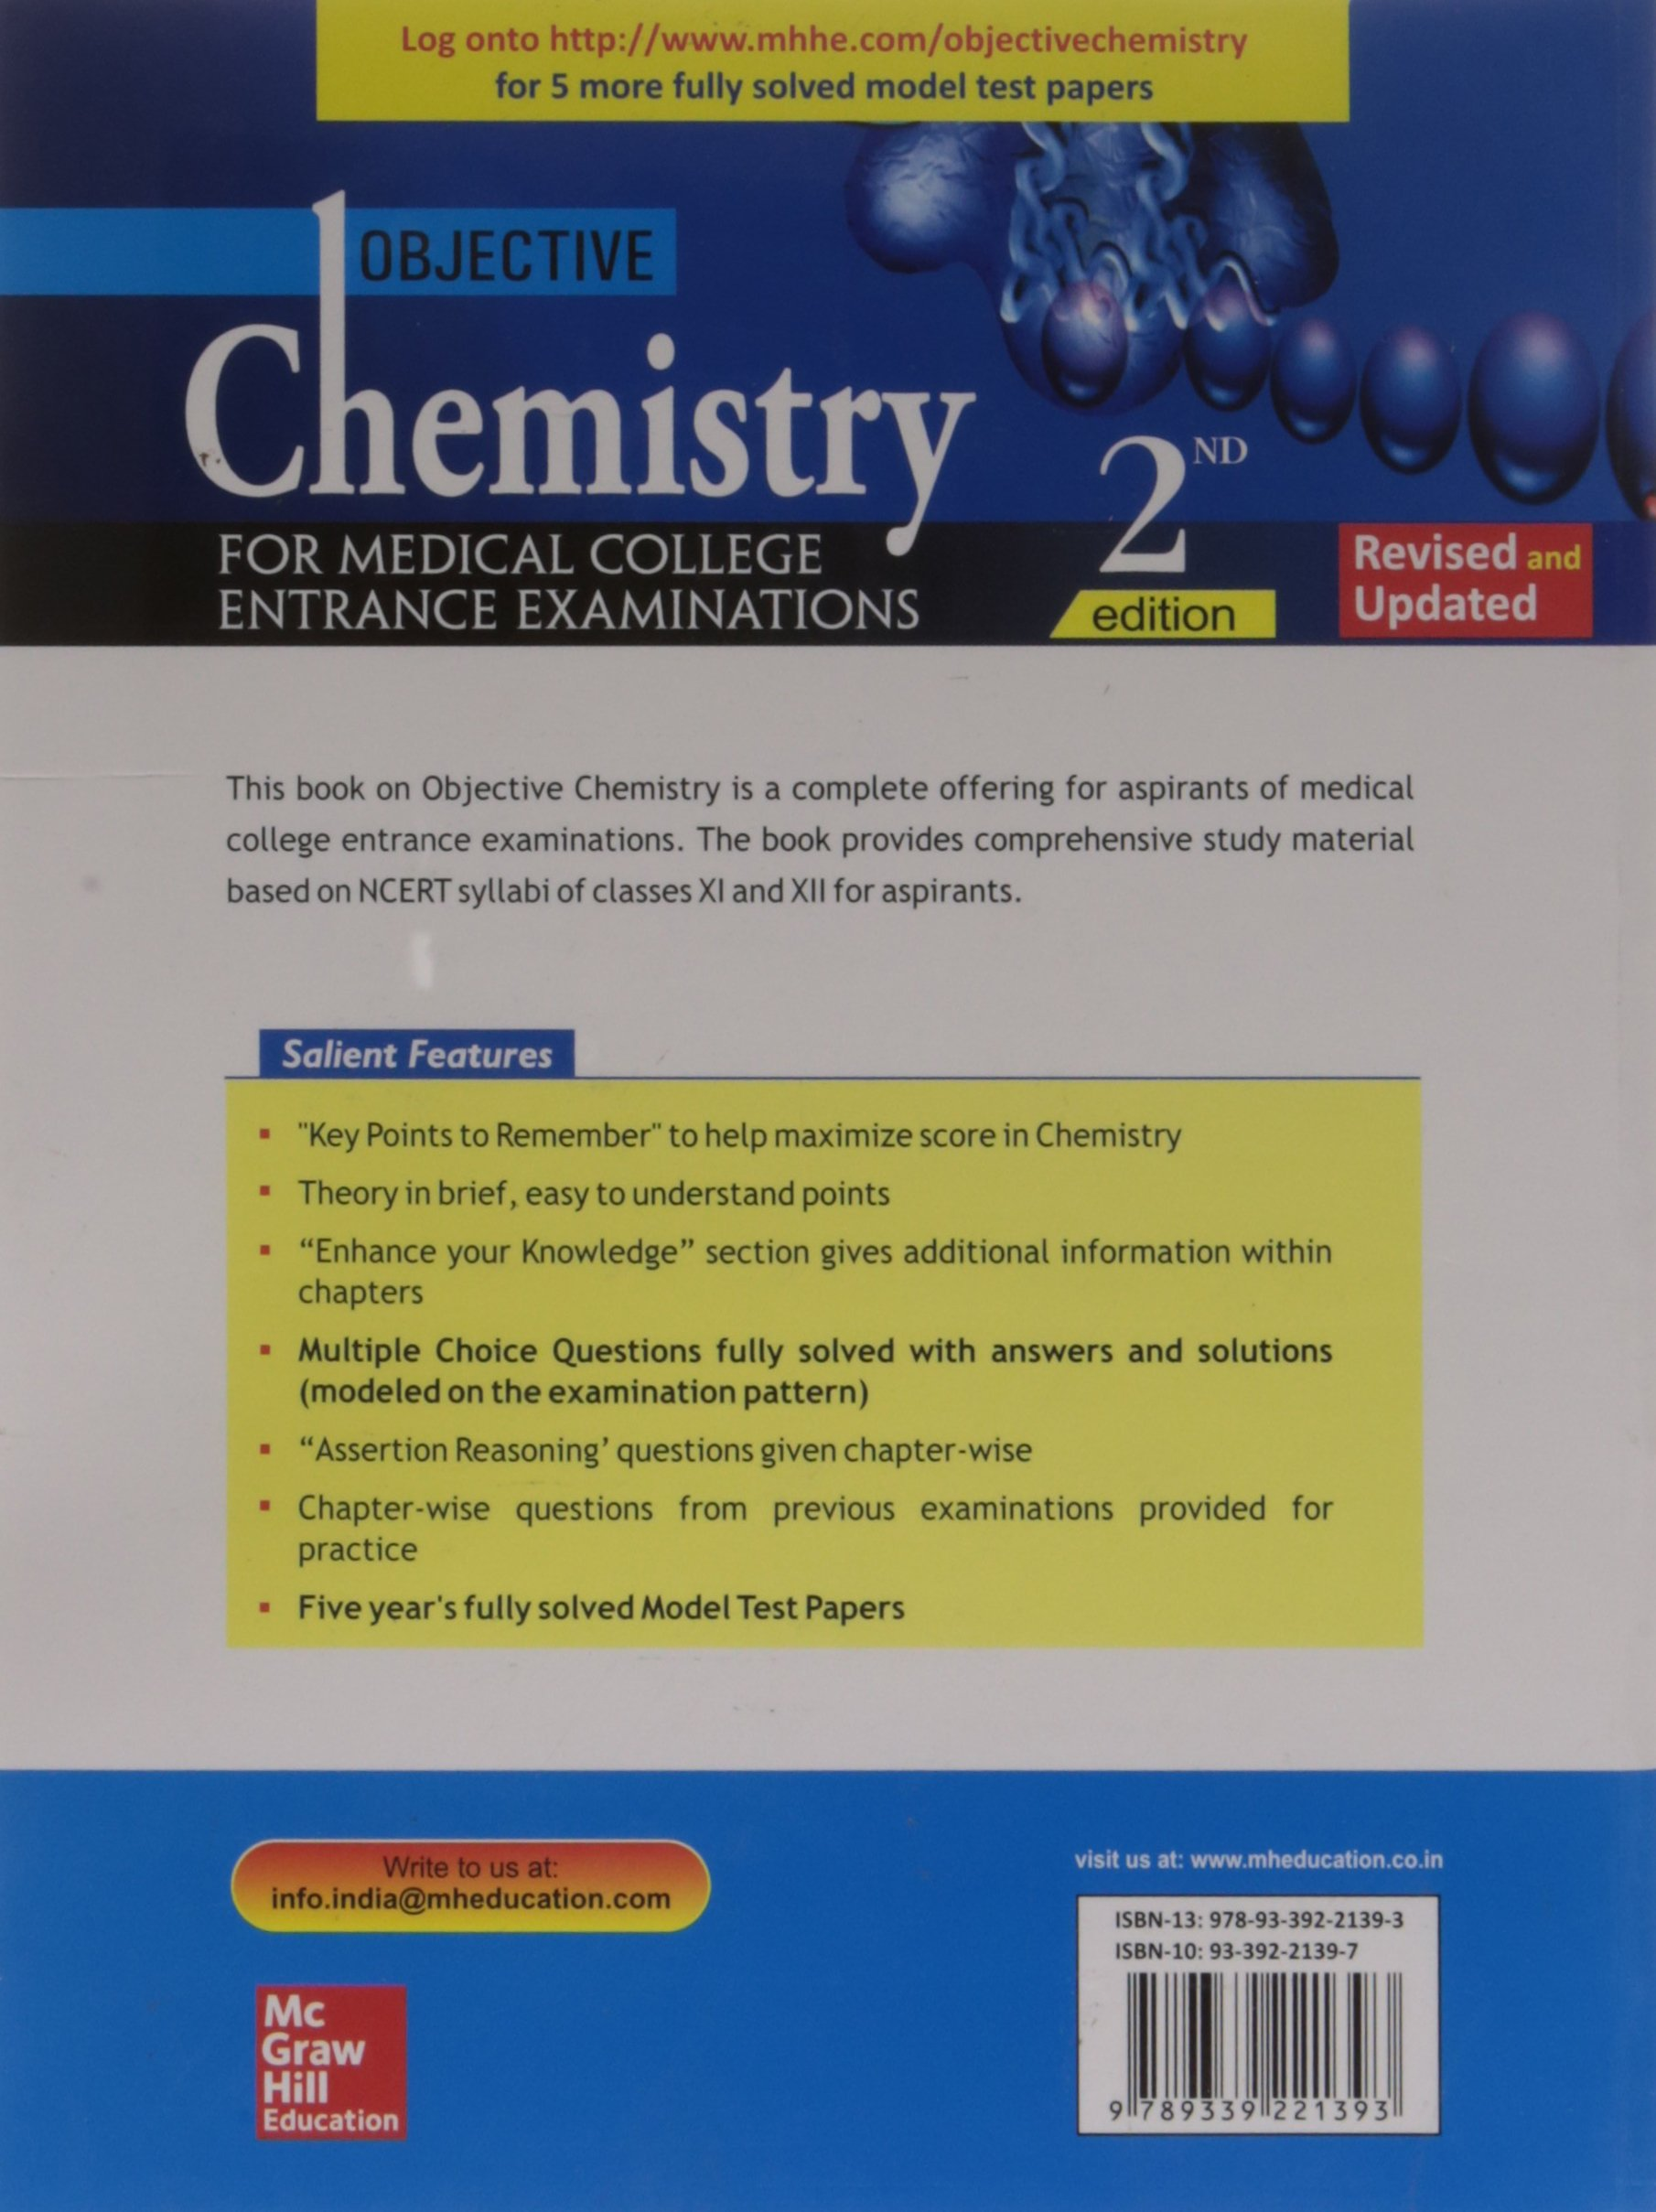 Buy Objective Chemistry for Medical College Entrance Examinations